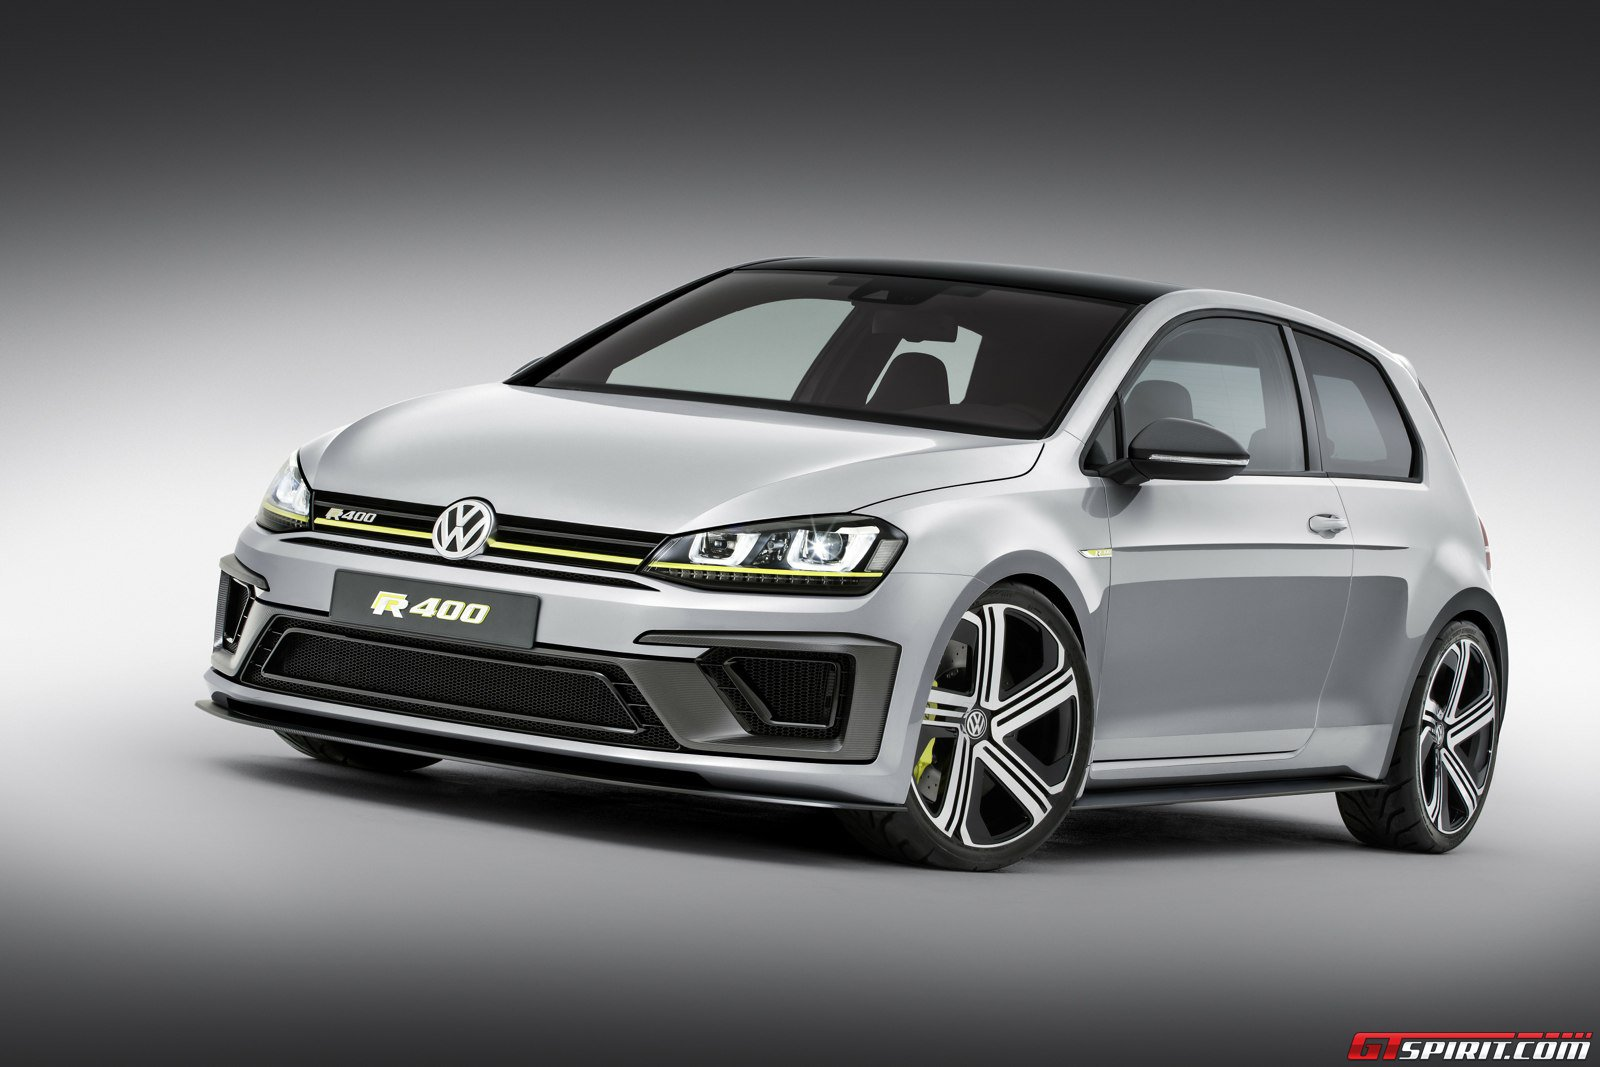 Фото | Volkswagen Golf R 400. Концепт 2014 года